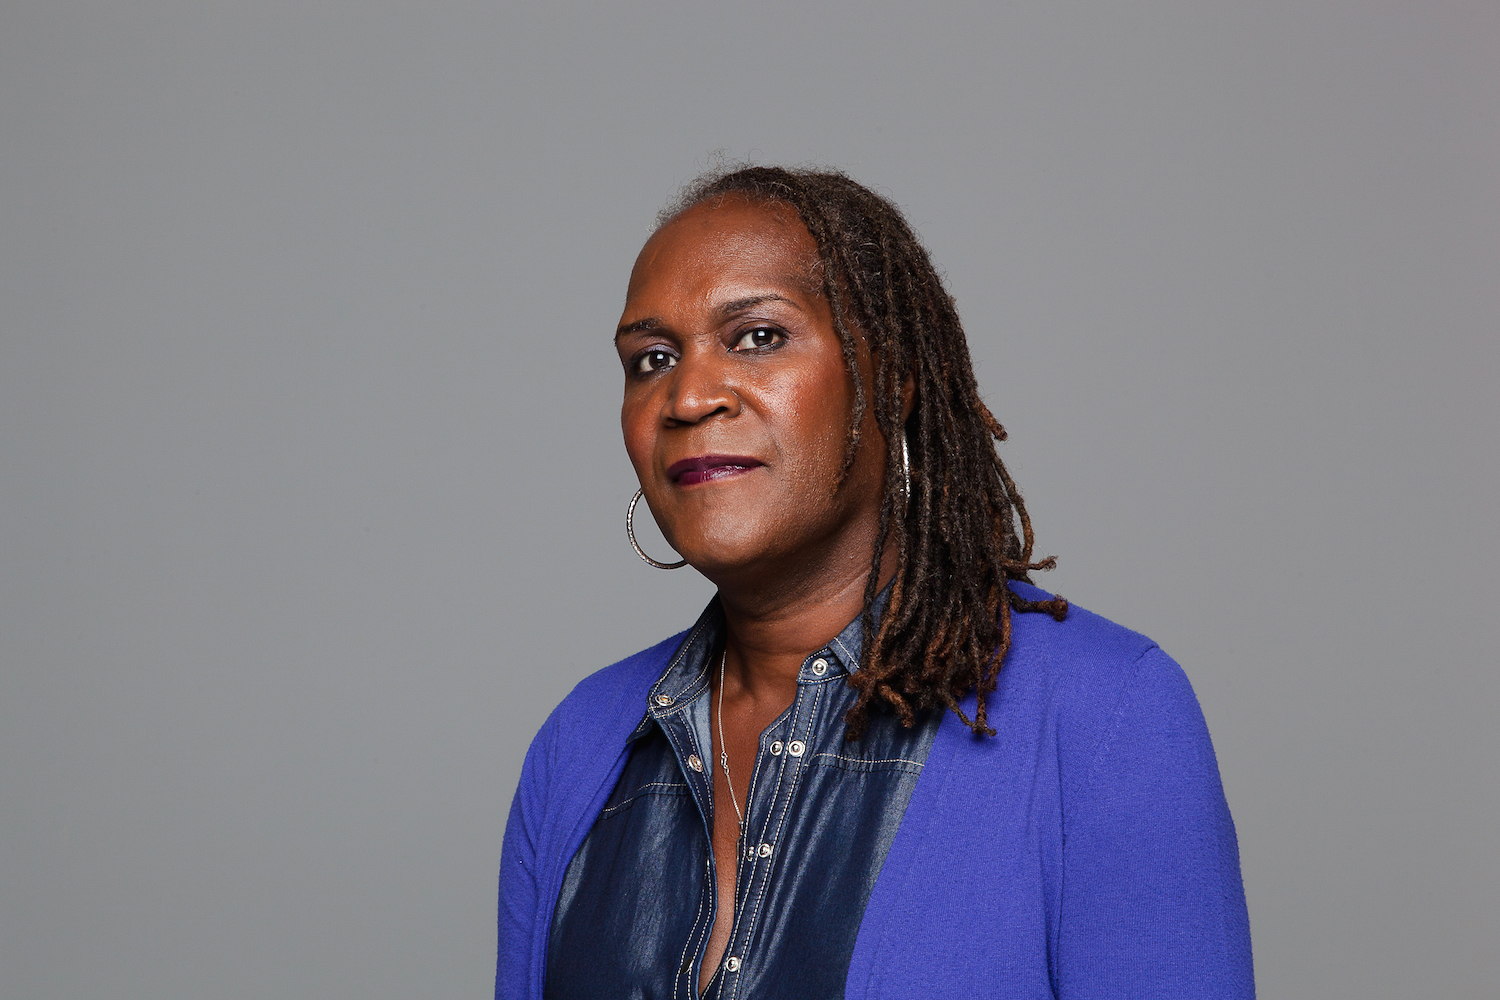 Andrea Jenkins was elected as the first openly transgender woman of color to be elected to public office. She previously served as the policy aide to Robert Lilligren and Elizabeth Glidden. Jenkins is also an award-winning poet, writer, and advocate for transgender equality.